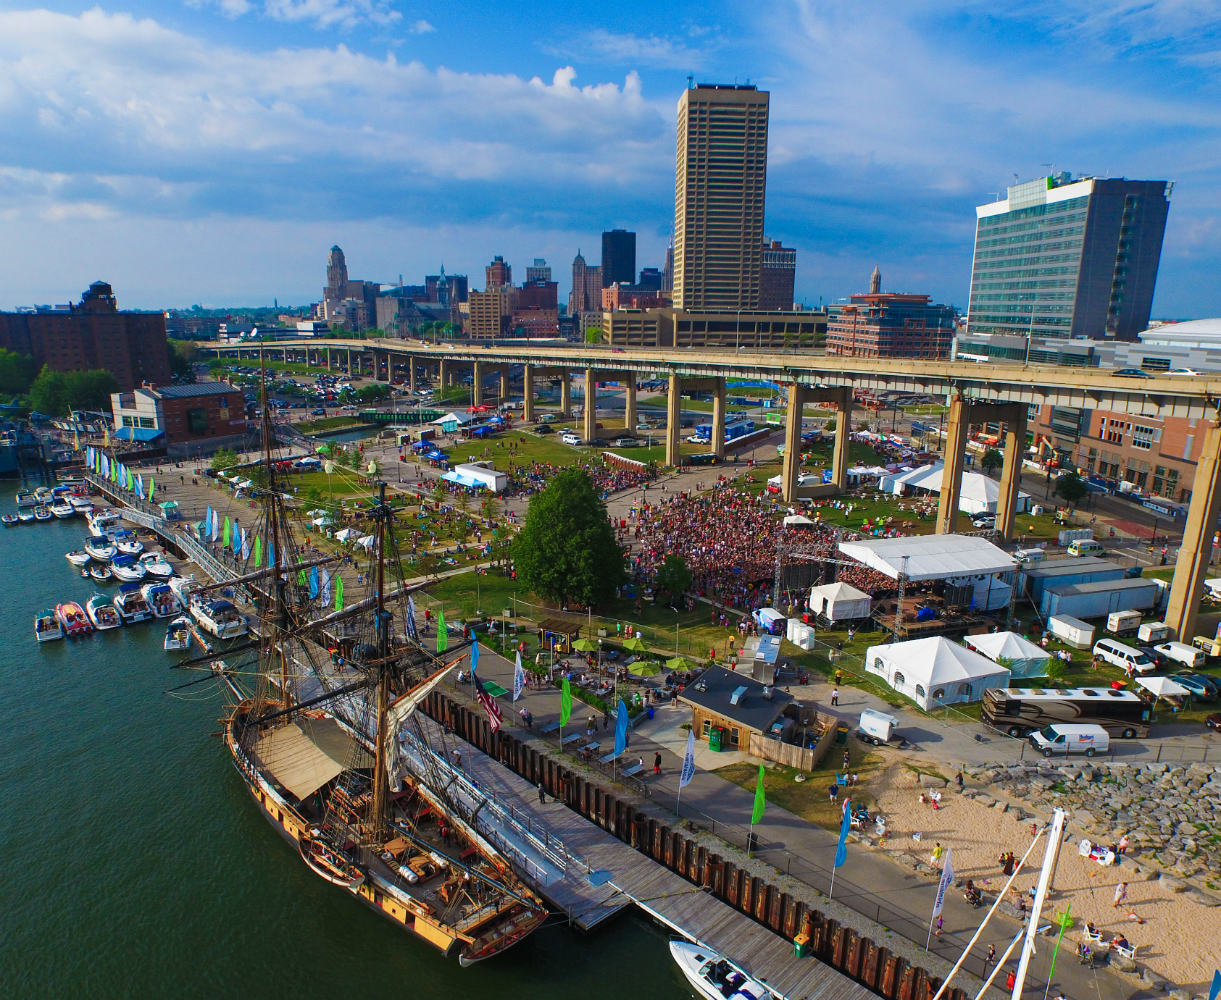 Canalside_Buffalo Aerial Pictures-w1500-h1000